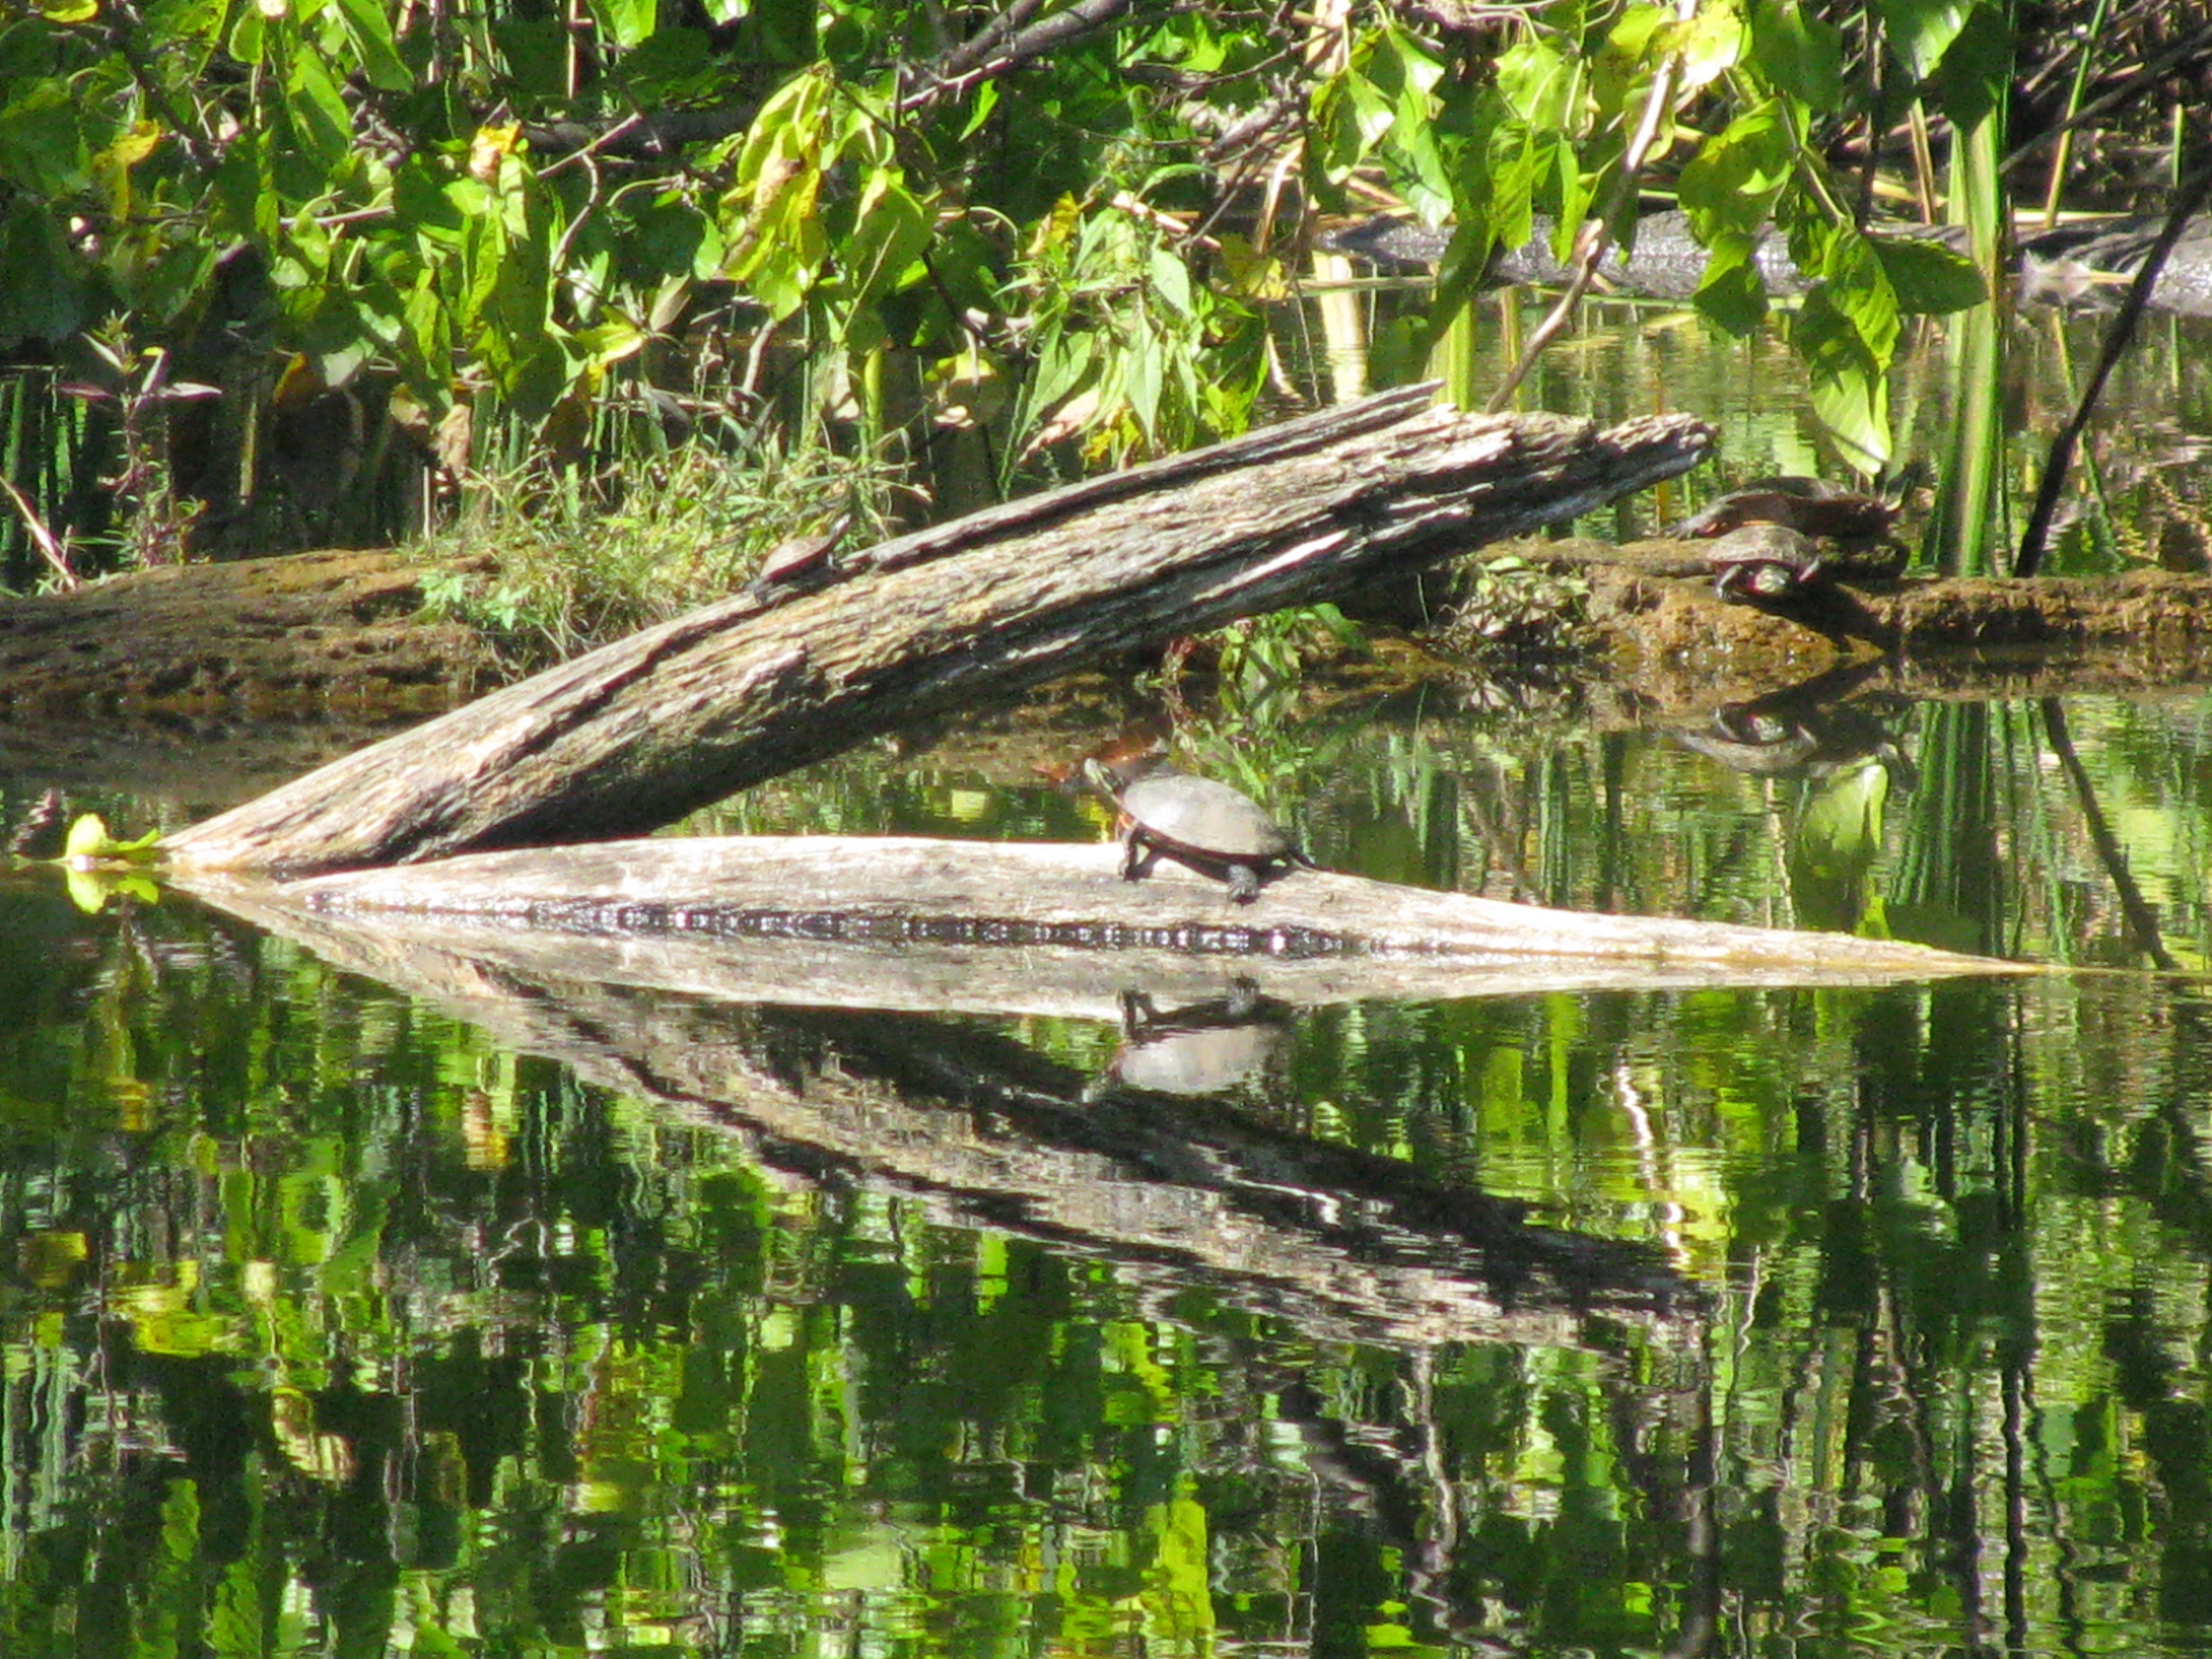 These turtles, catching some rays by the little pond at Site 38, have the right idea. Photo: Sue Quarto, FESS